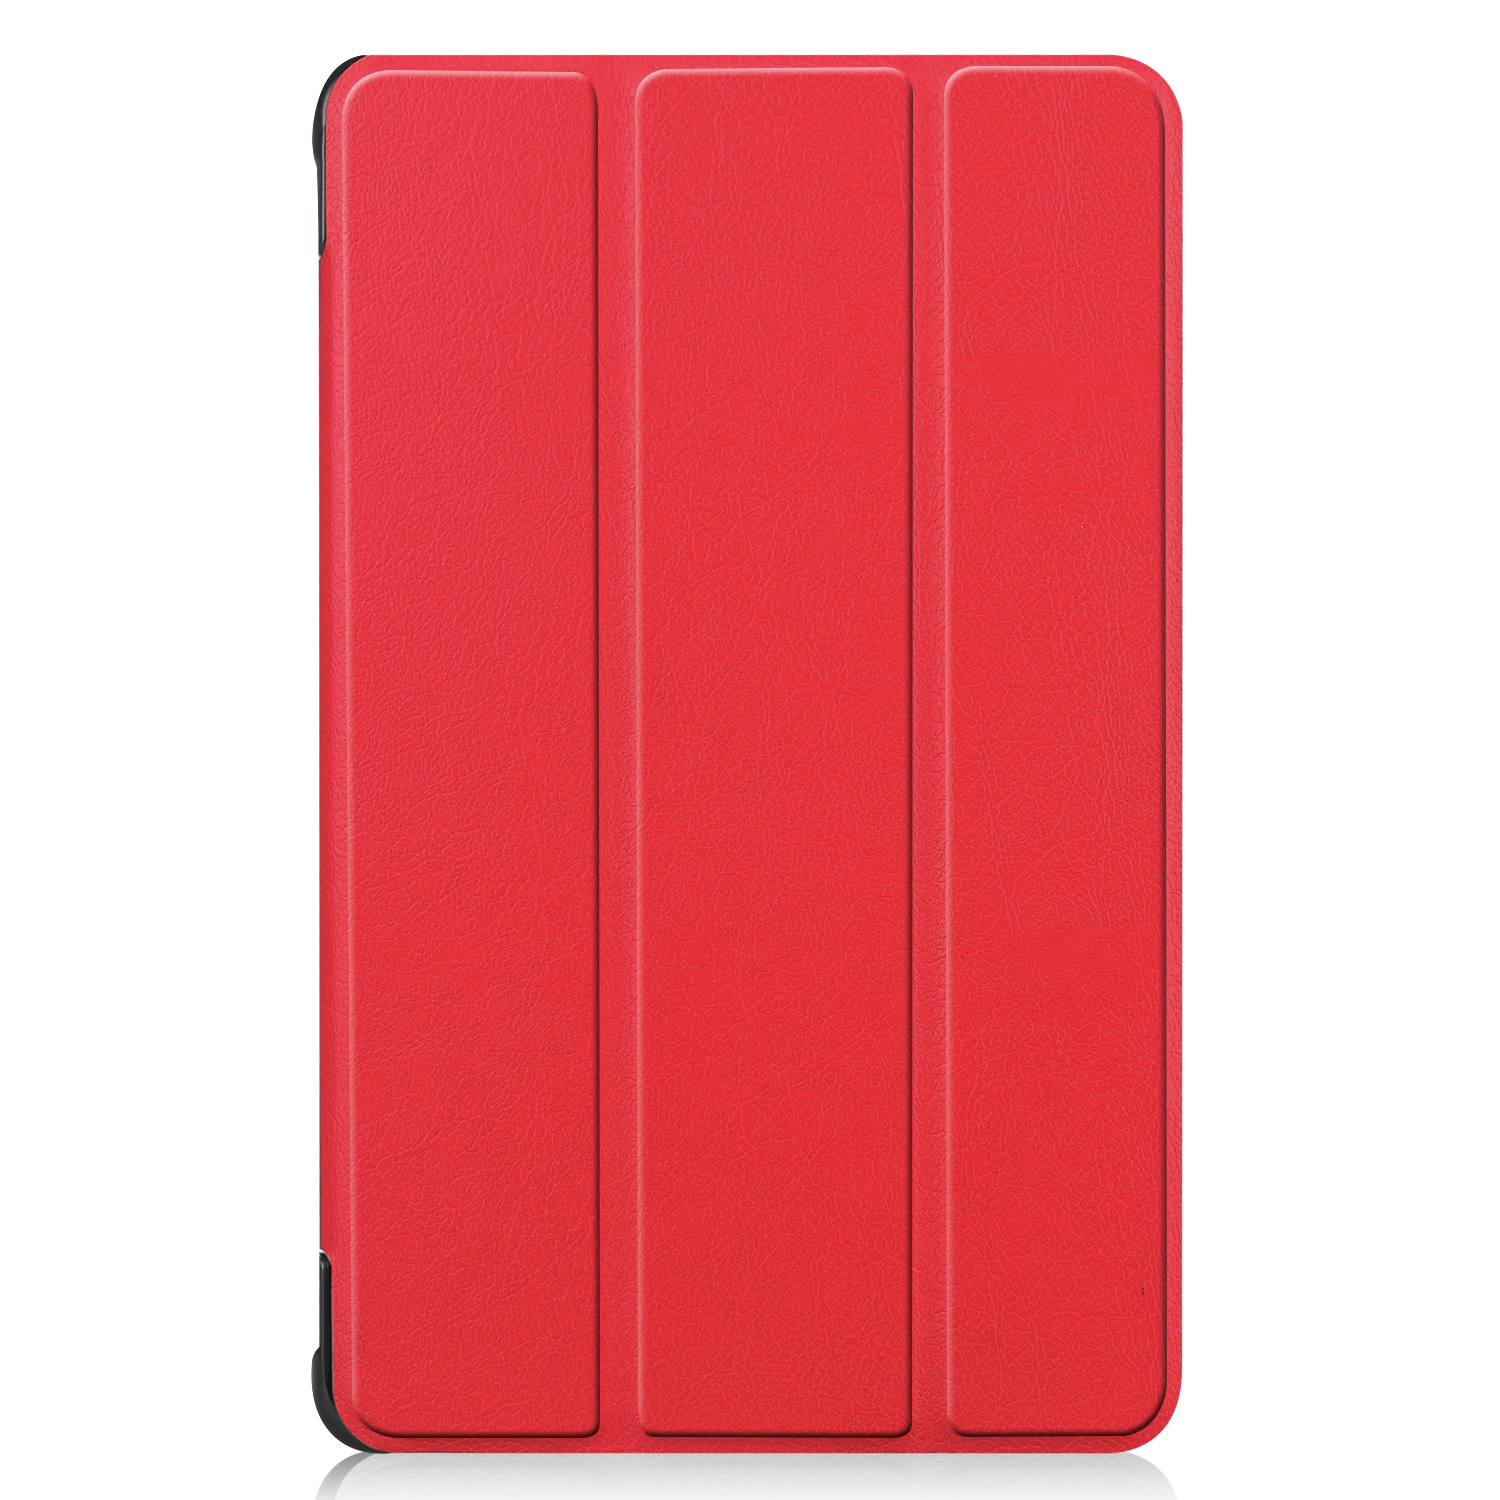 Lunso 3-Vouw sleepcover hoes Rood voor de Samsung Galaxy Tab A 8.0 inch 2019